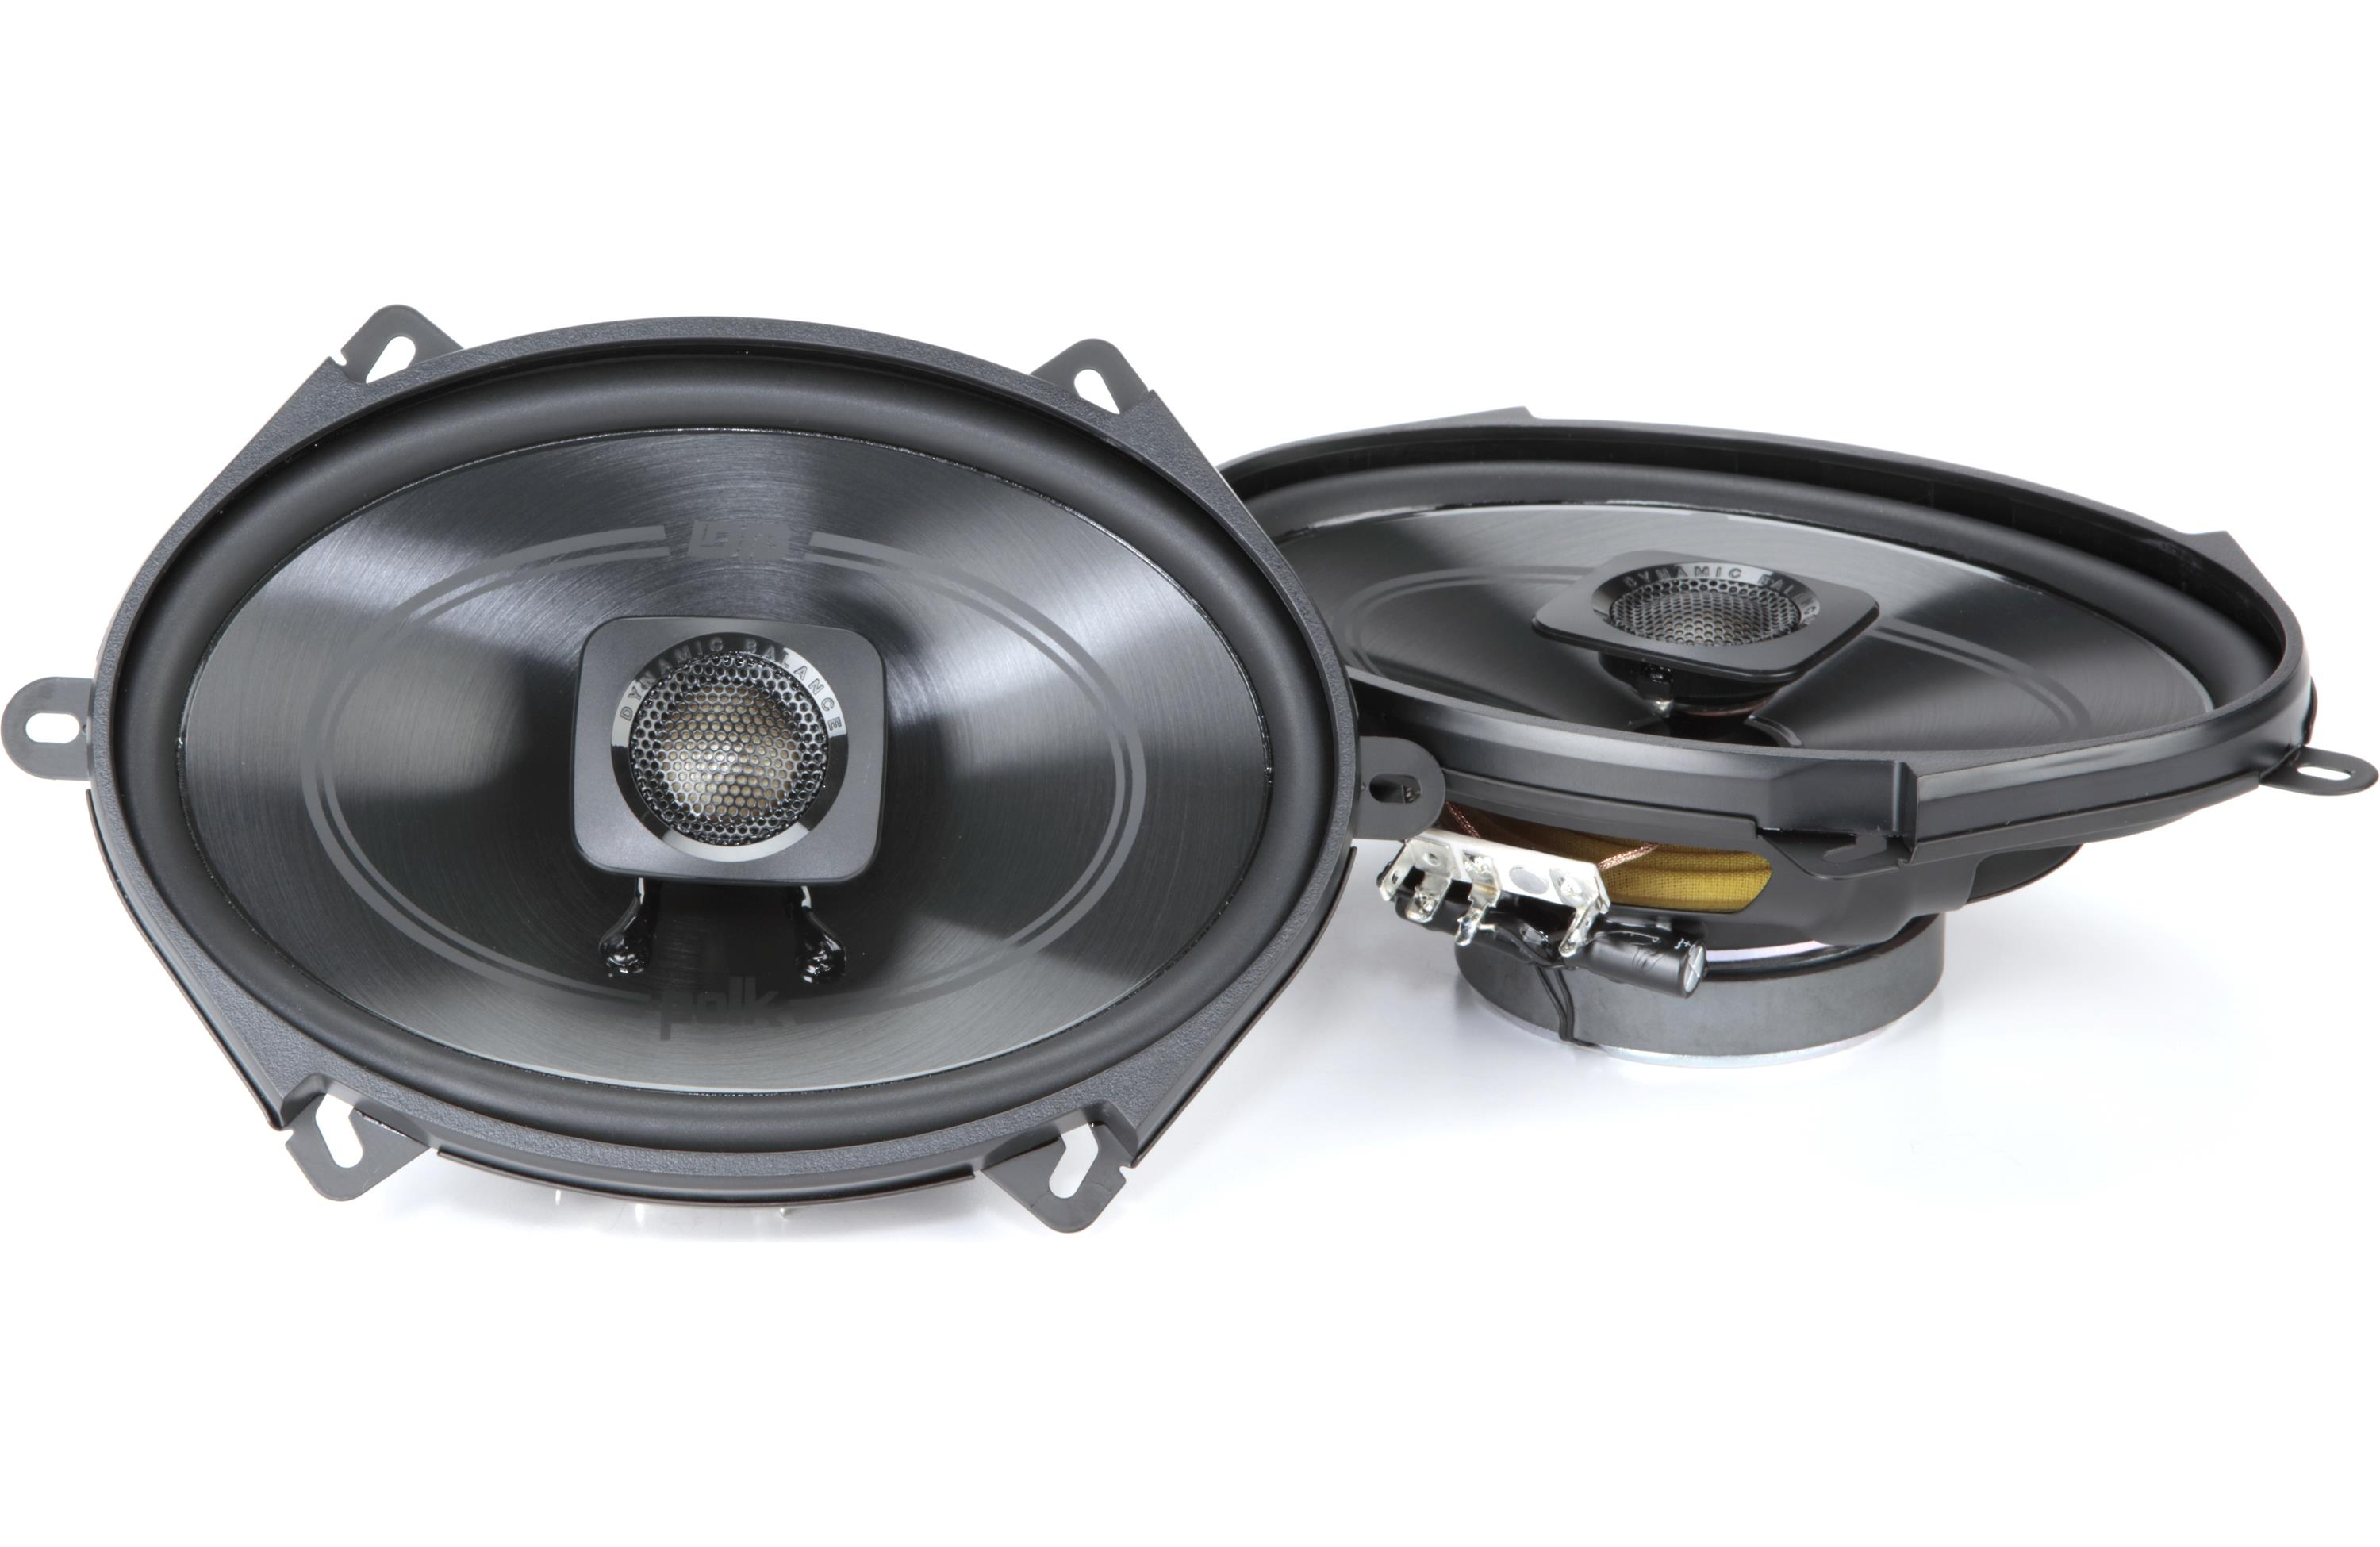 Polk Audio Db572 Db 572 2 Coaxial Car Speakers 5x7 Inch With 100w Subwoofer